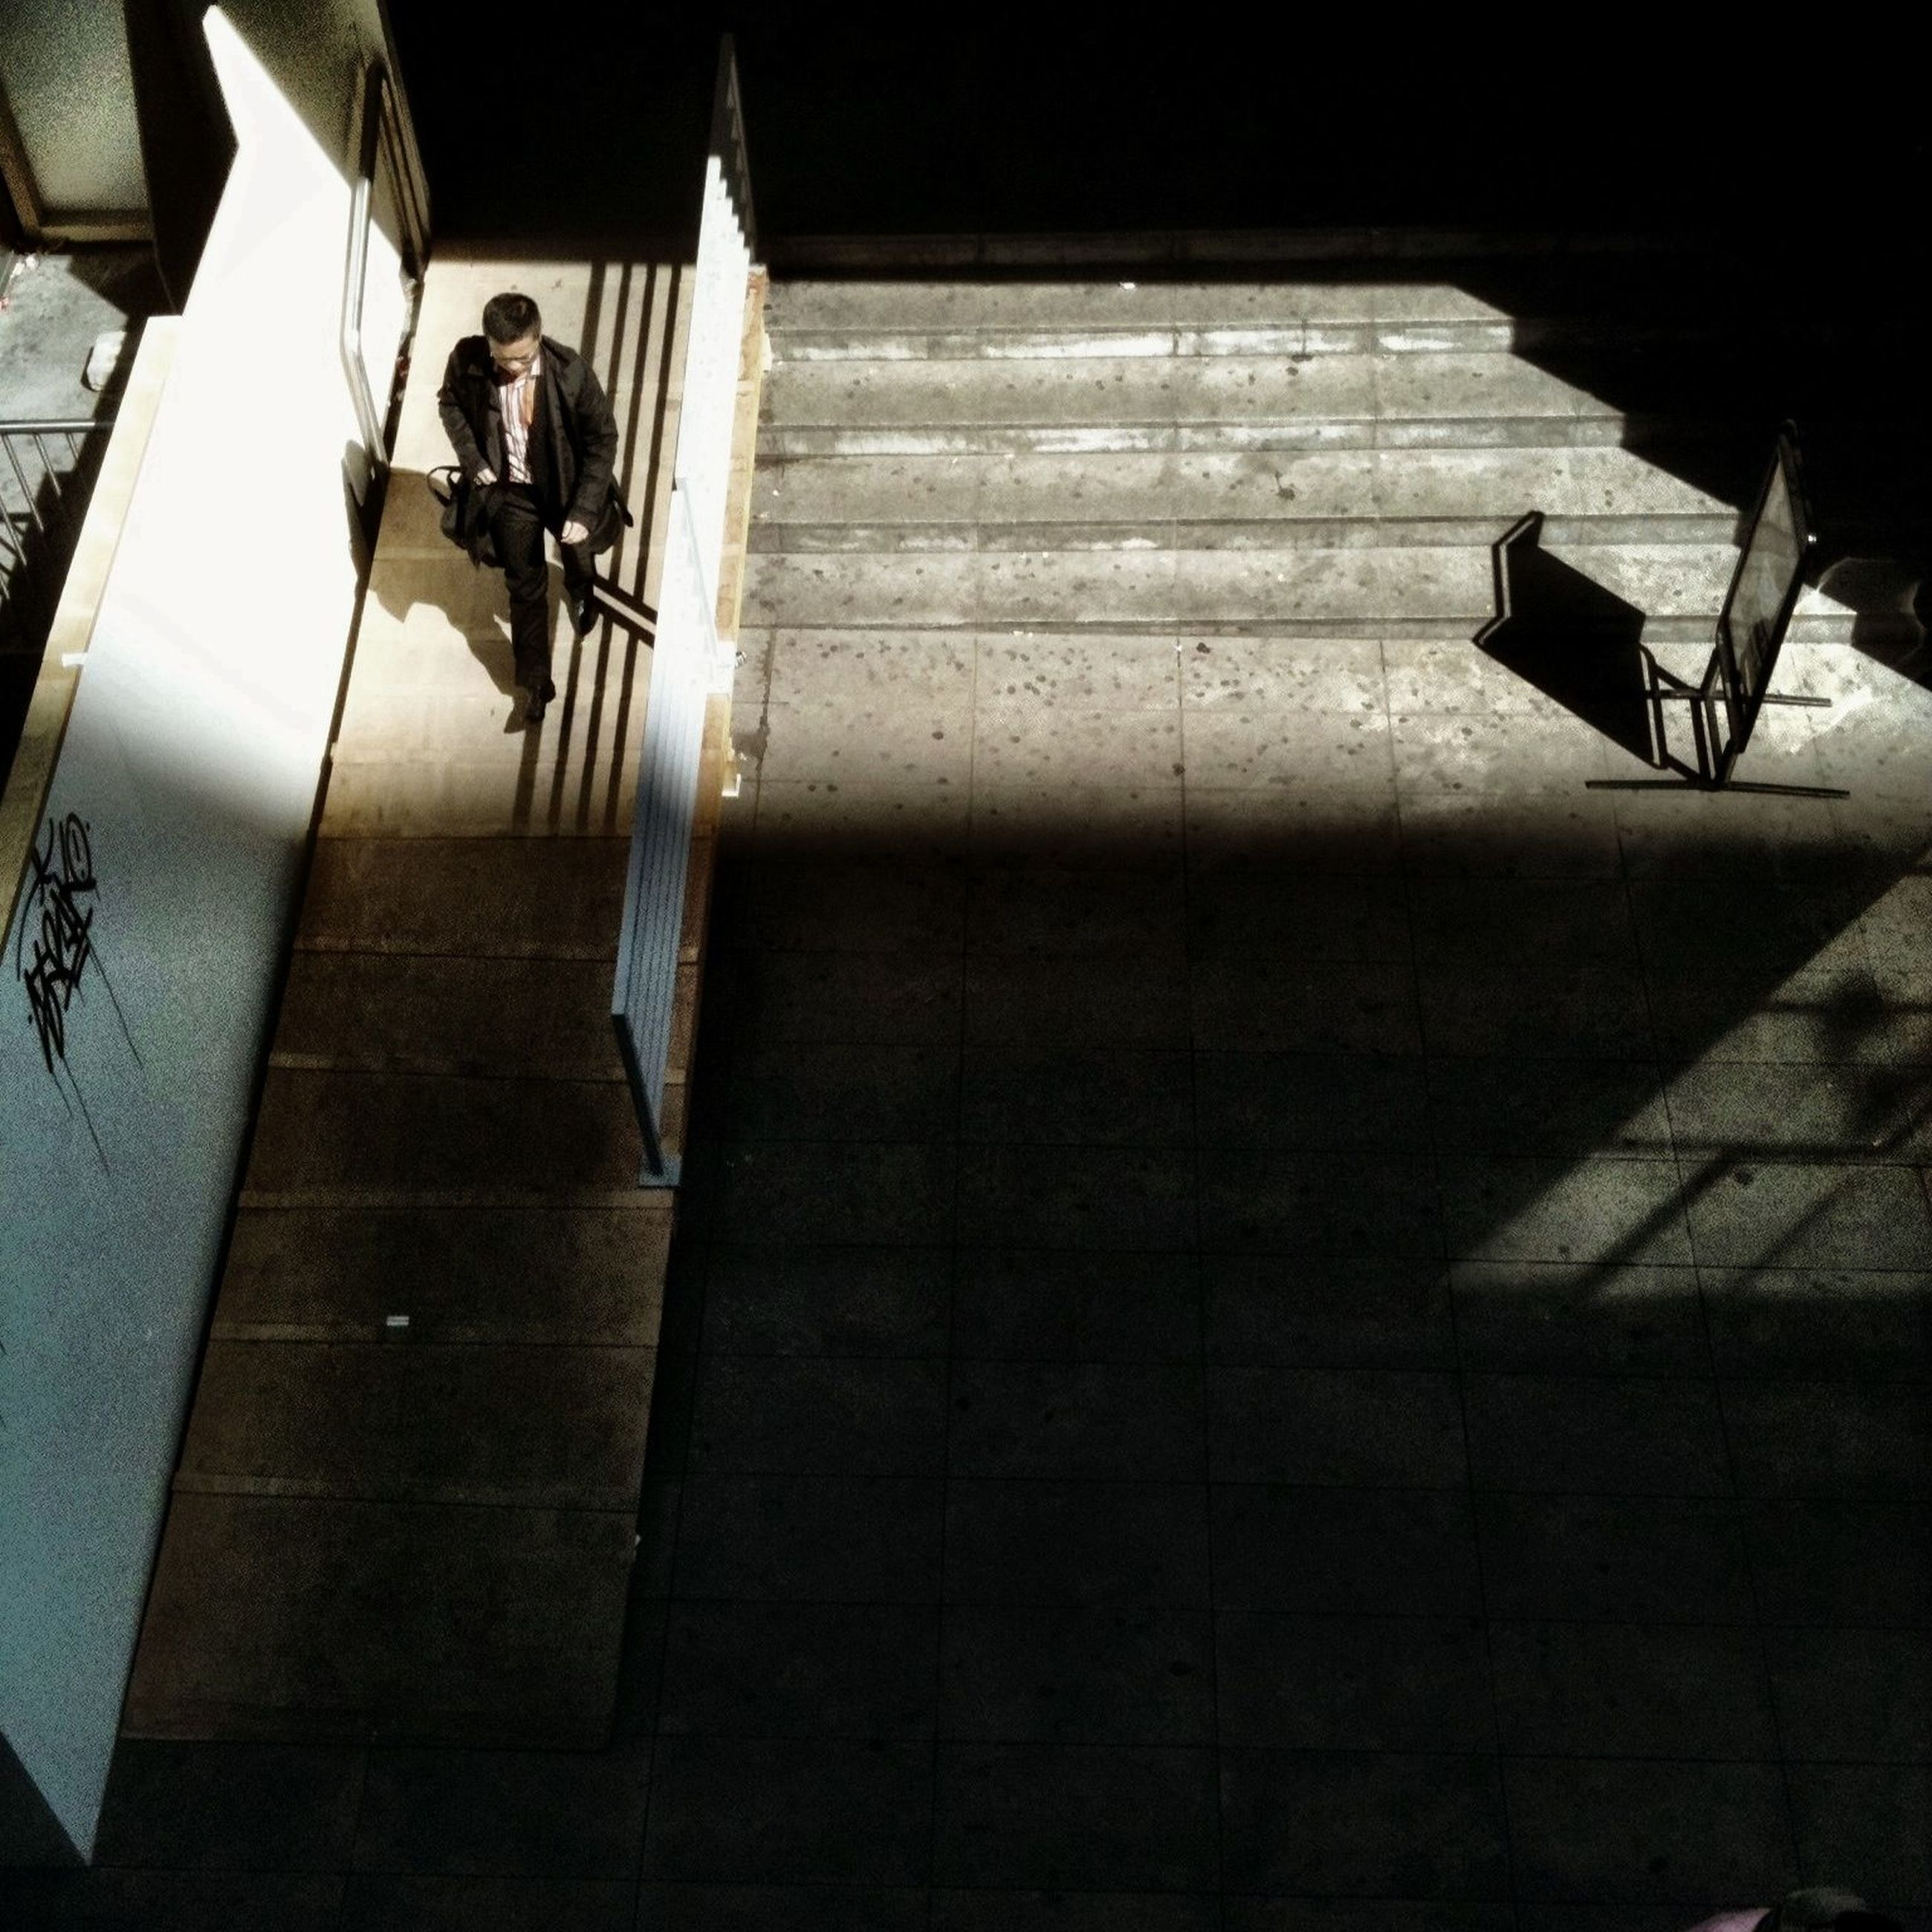 lifestyles, men, leisure activity, full length, indoors, steps, person, sitting, sunlight, built structure, architecture, shadow, walking, togetherness, high angle view, rear view, casual clothing